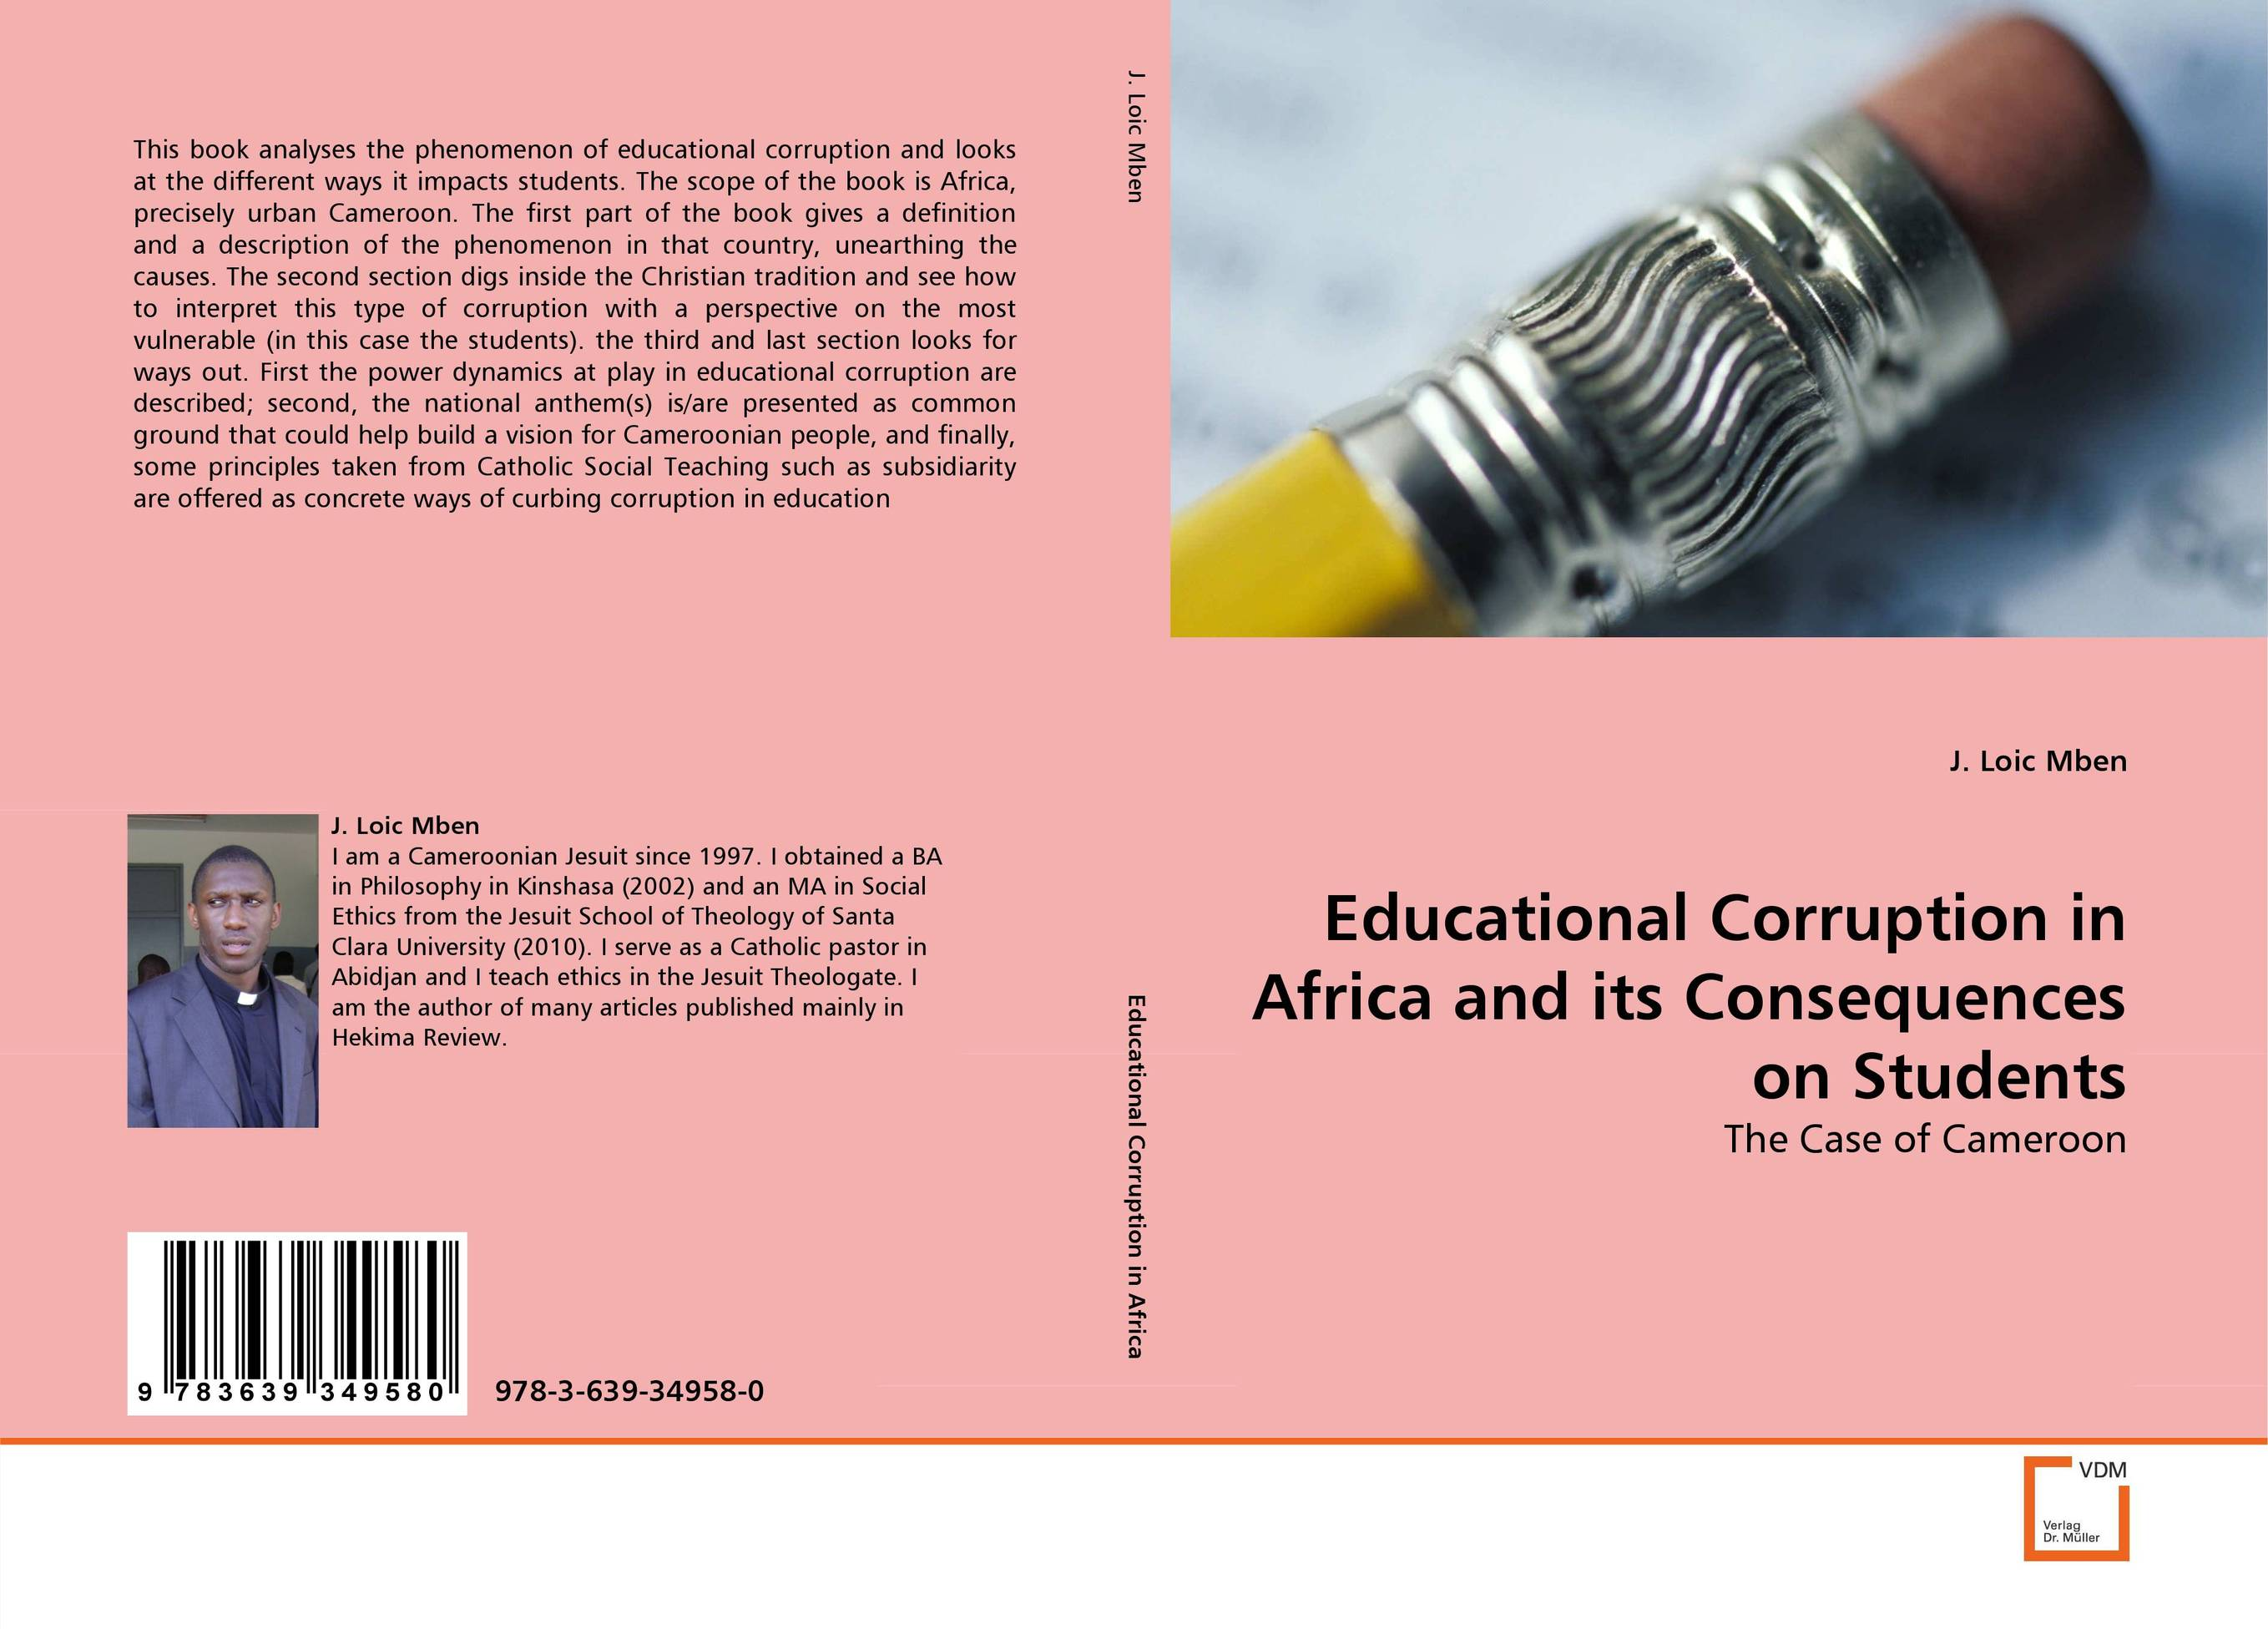 Educational Corruption in Africa and its Consequences on Students ways of curbing tax evasion in zimbabwe